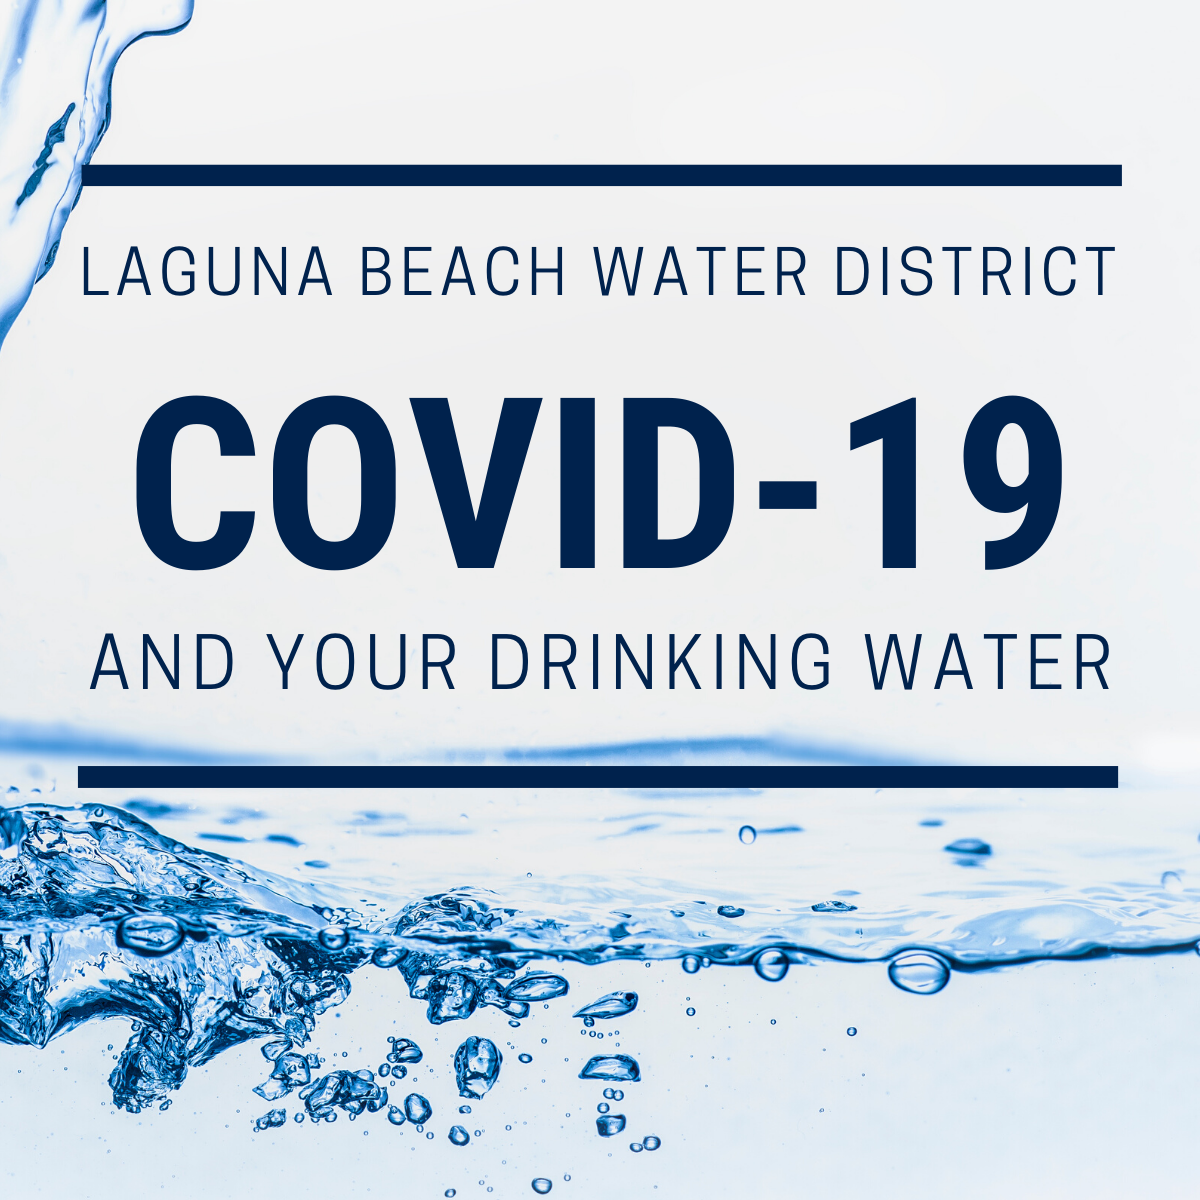 COVID-19 and Your Drinking Water